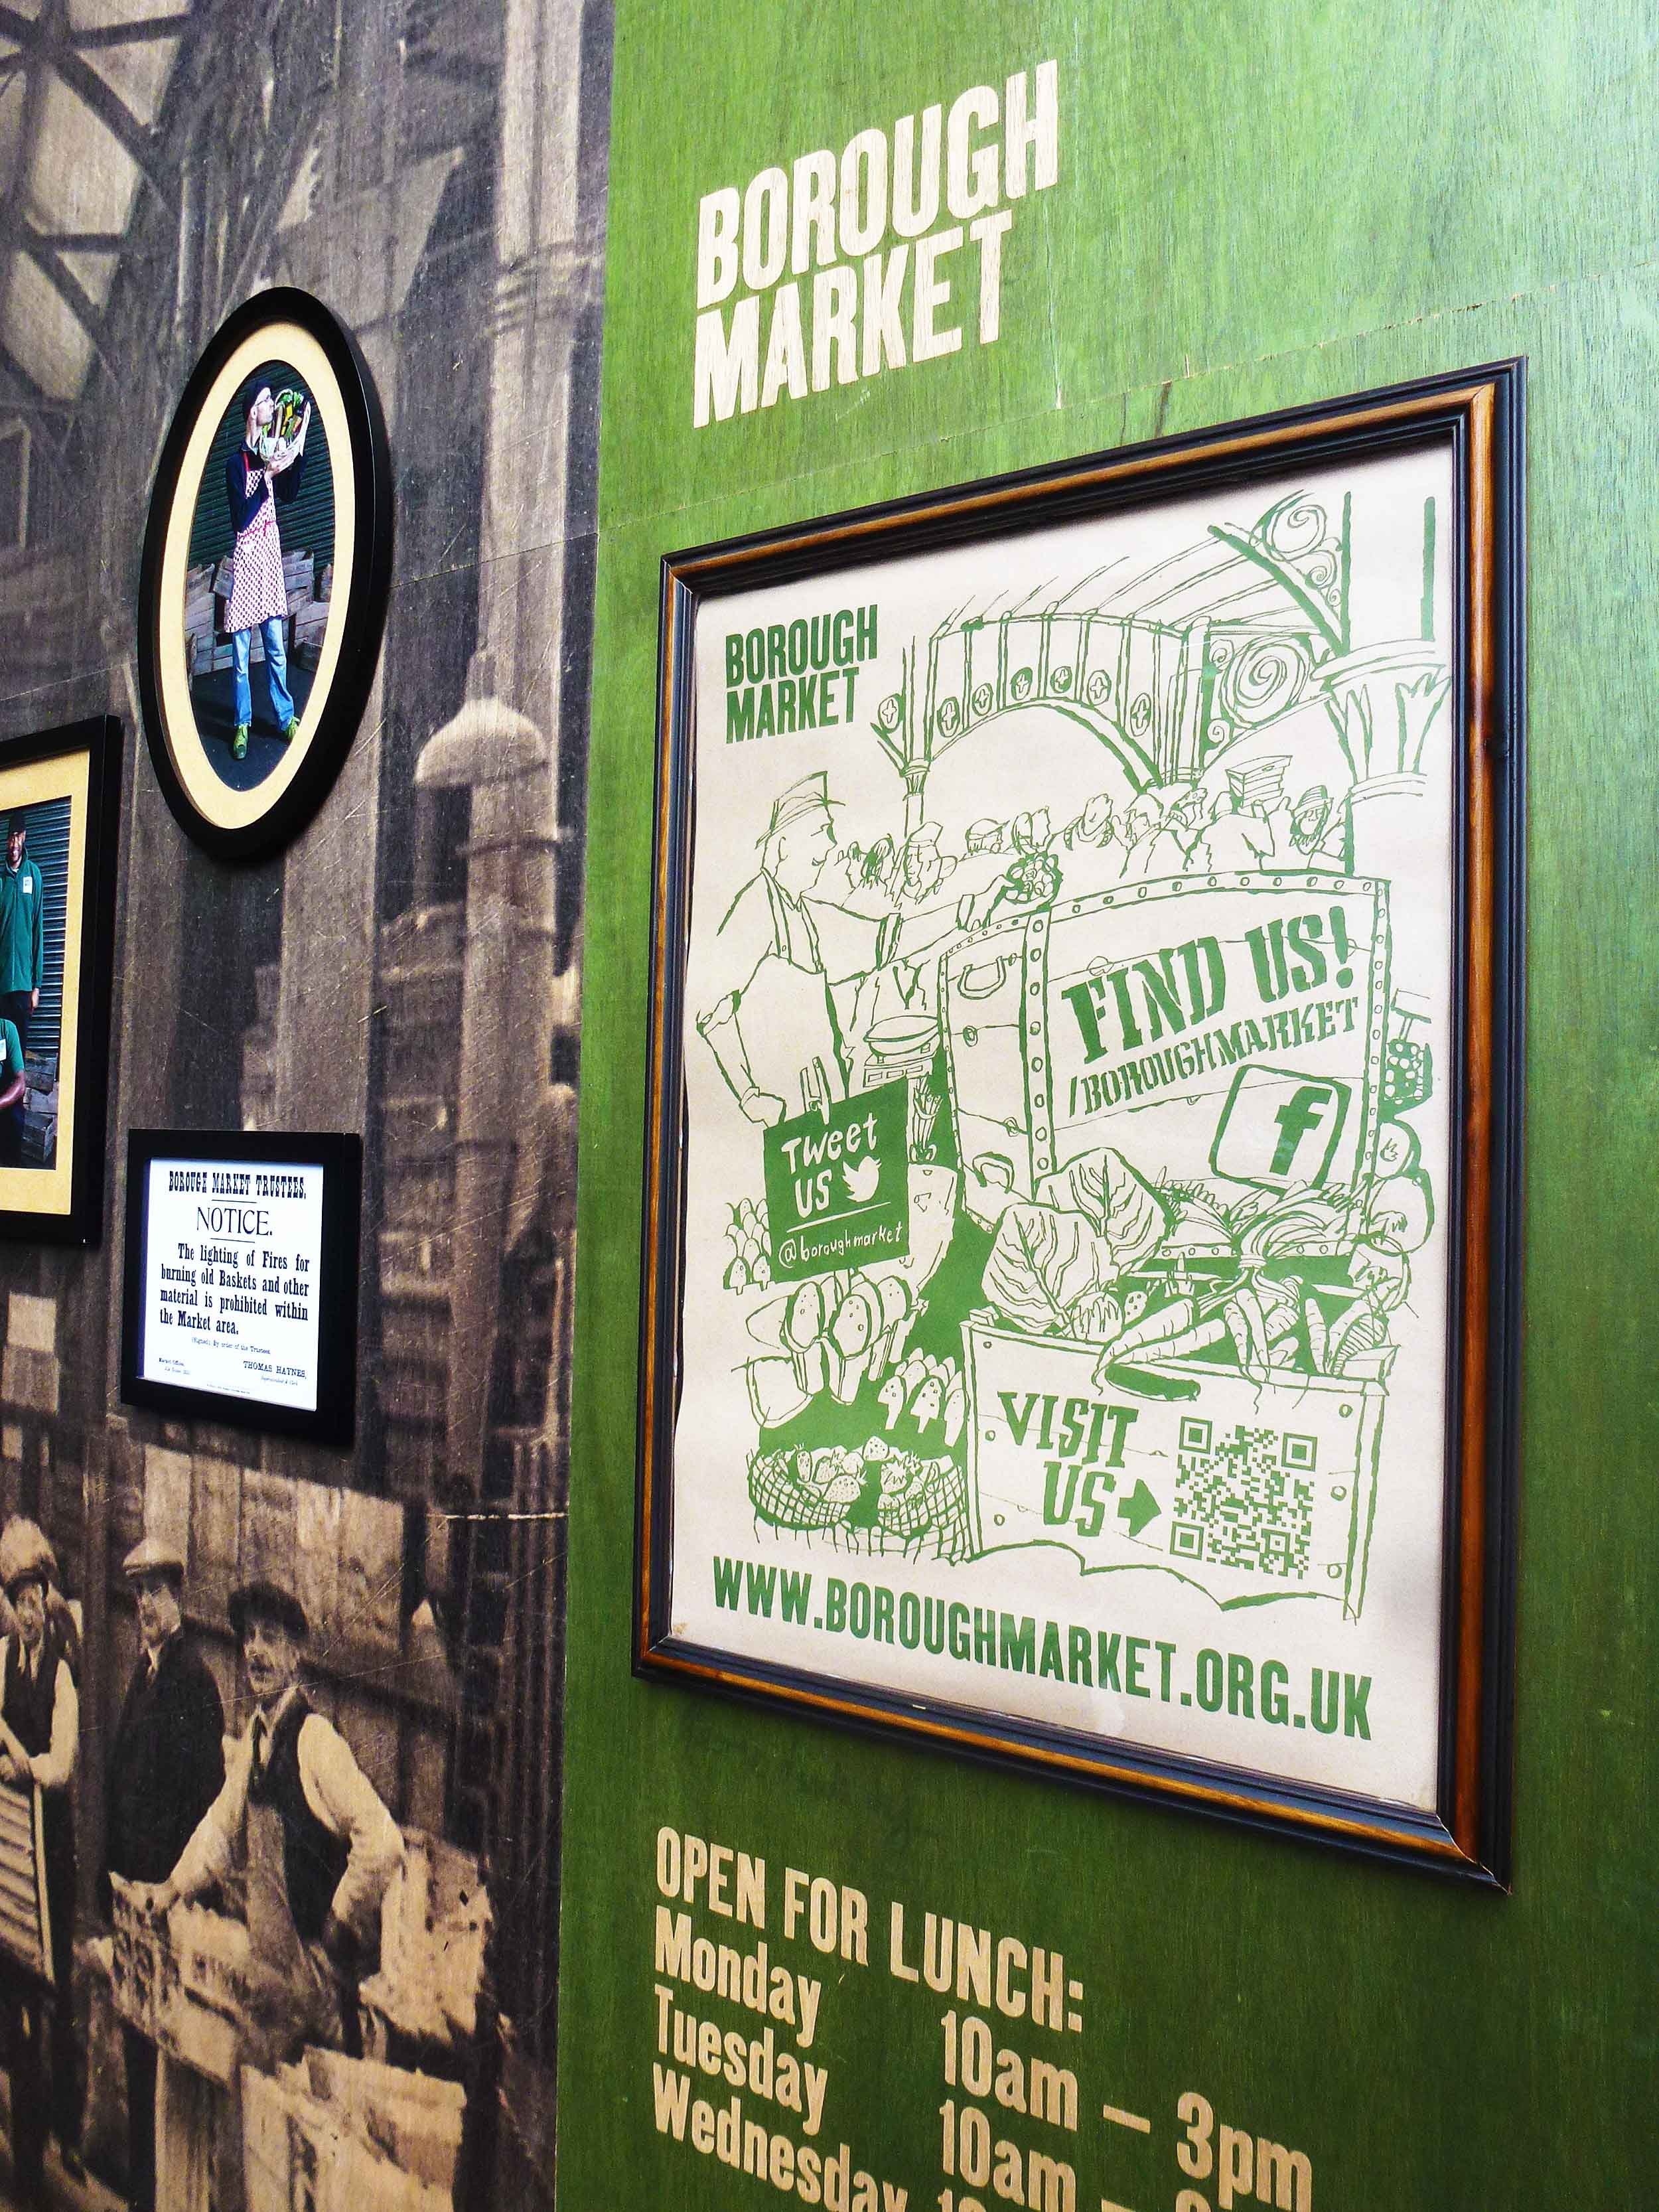 More Borough Market by James Oses, image 17